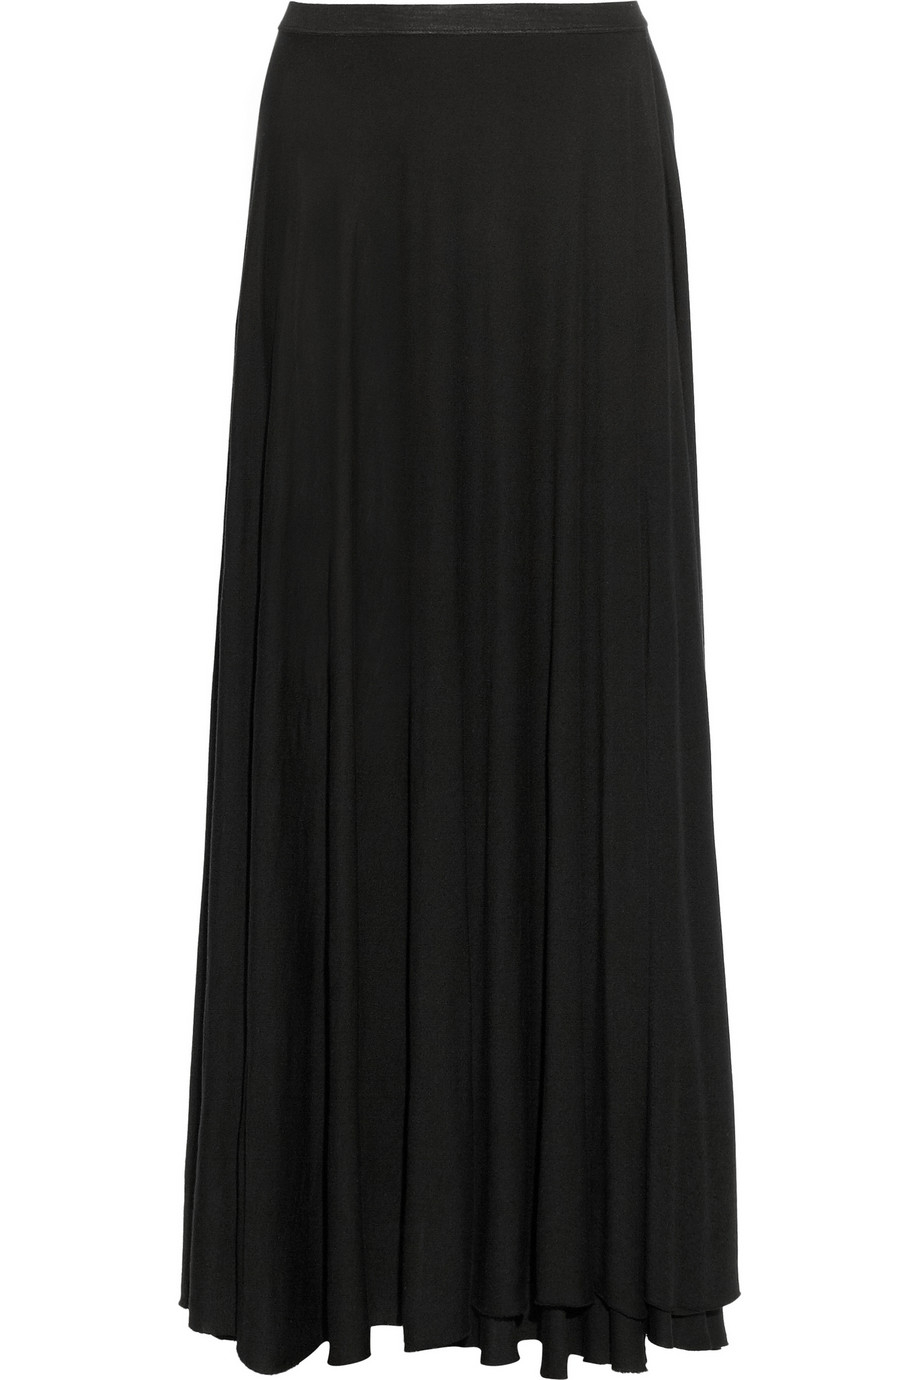 enza costa wrap effect jersey maxi skirt in black lyst